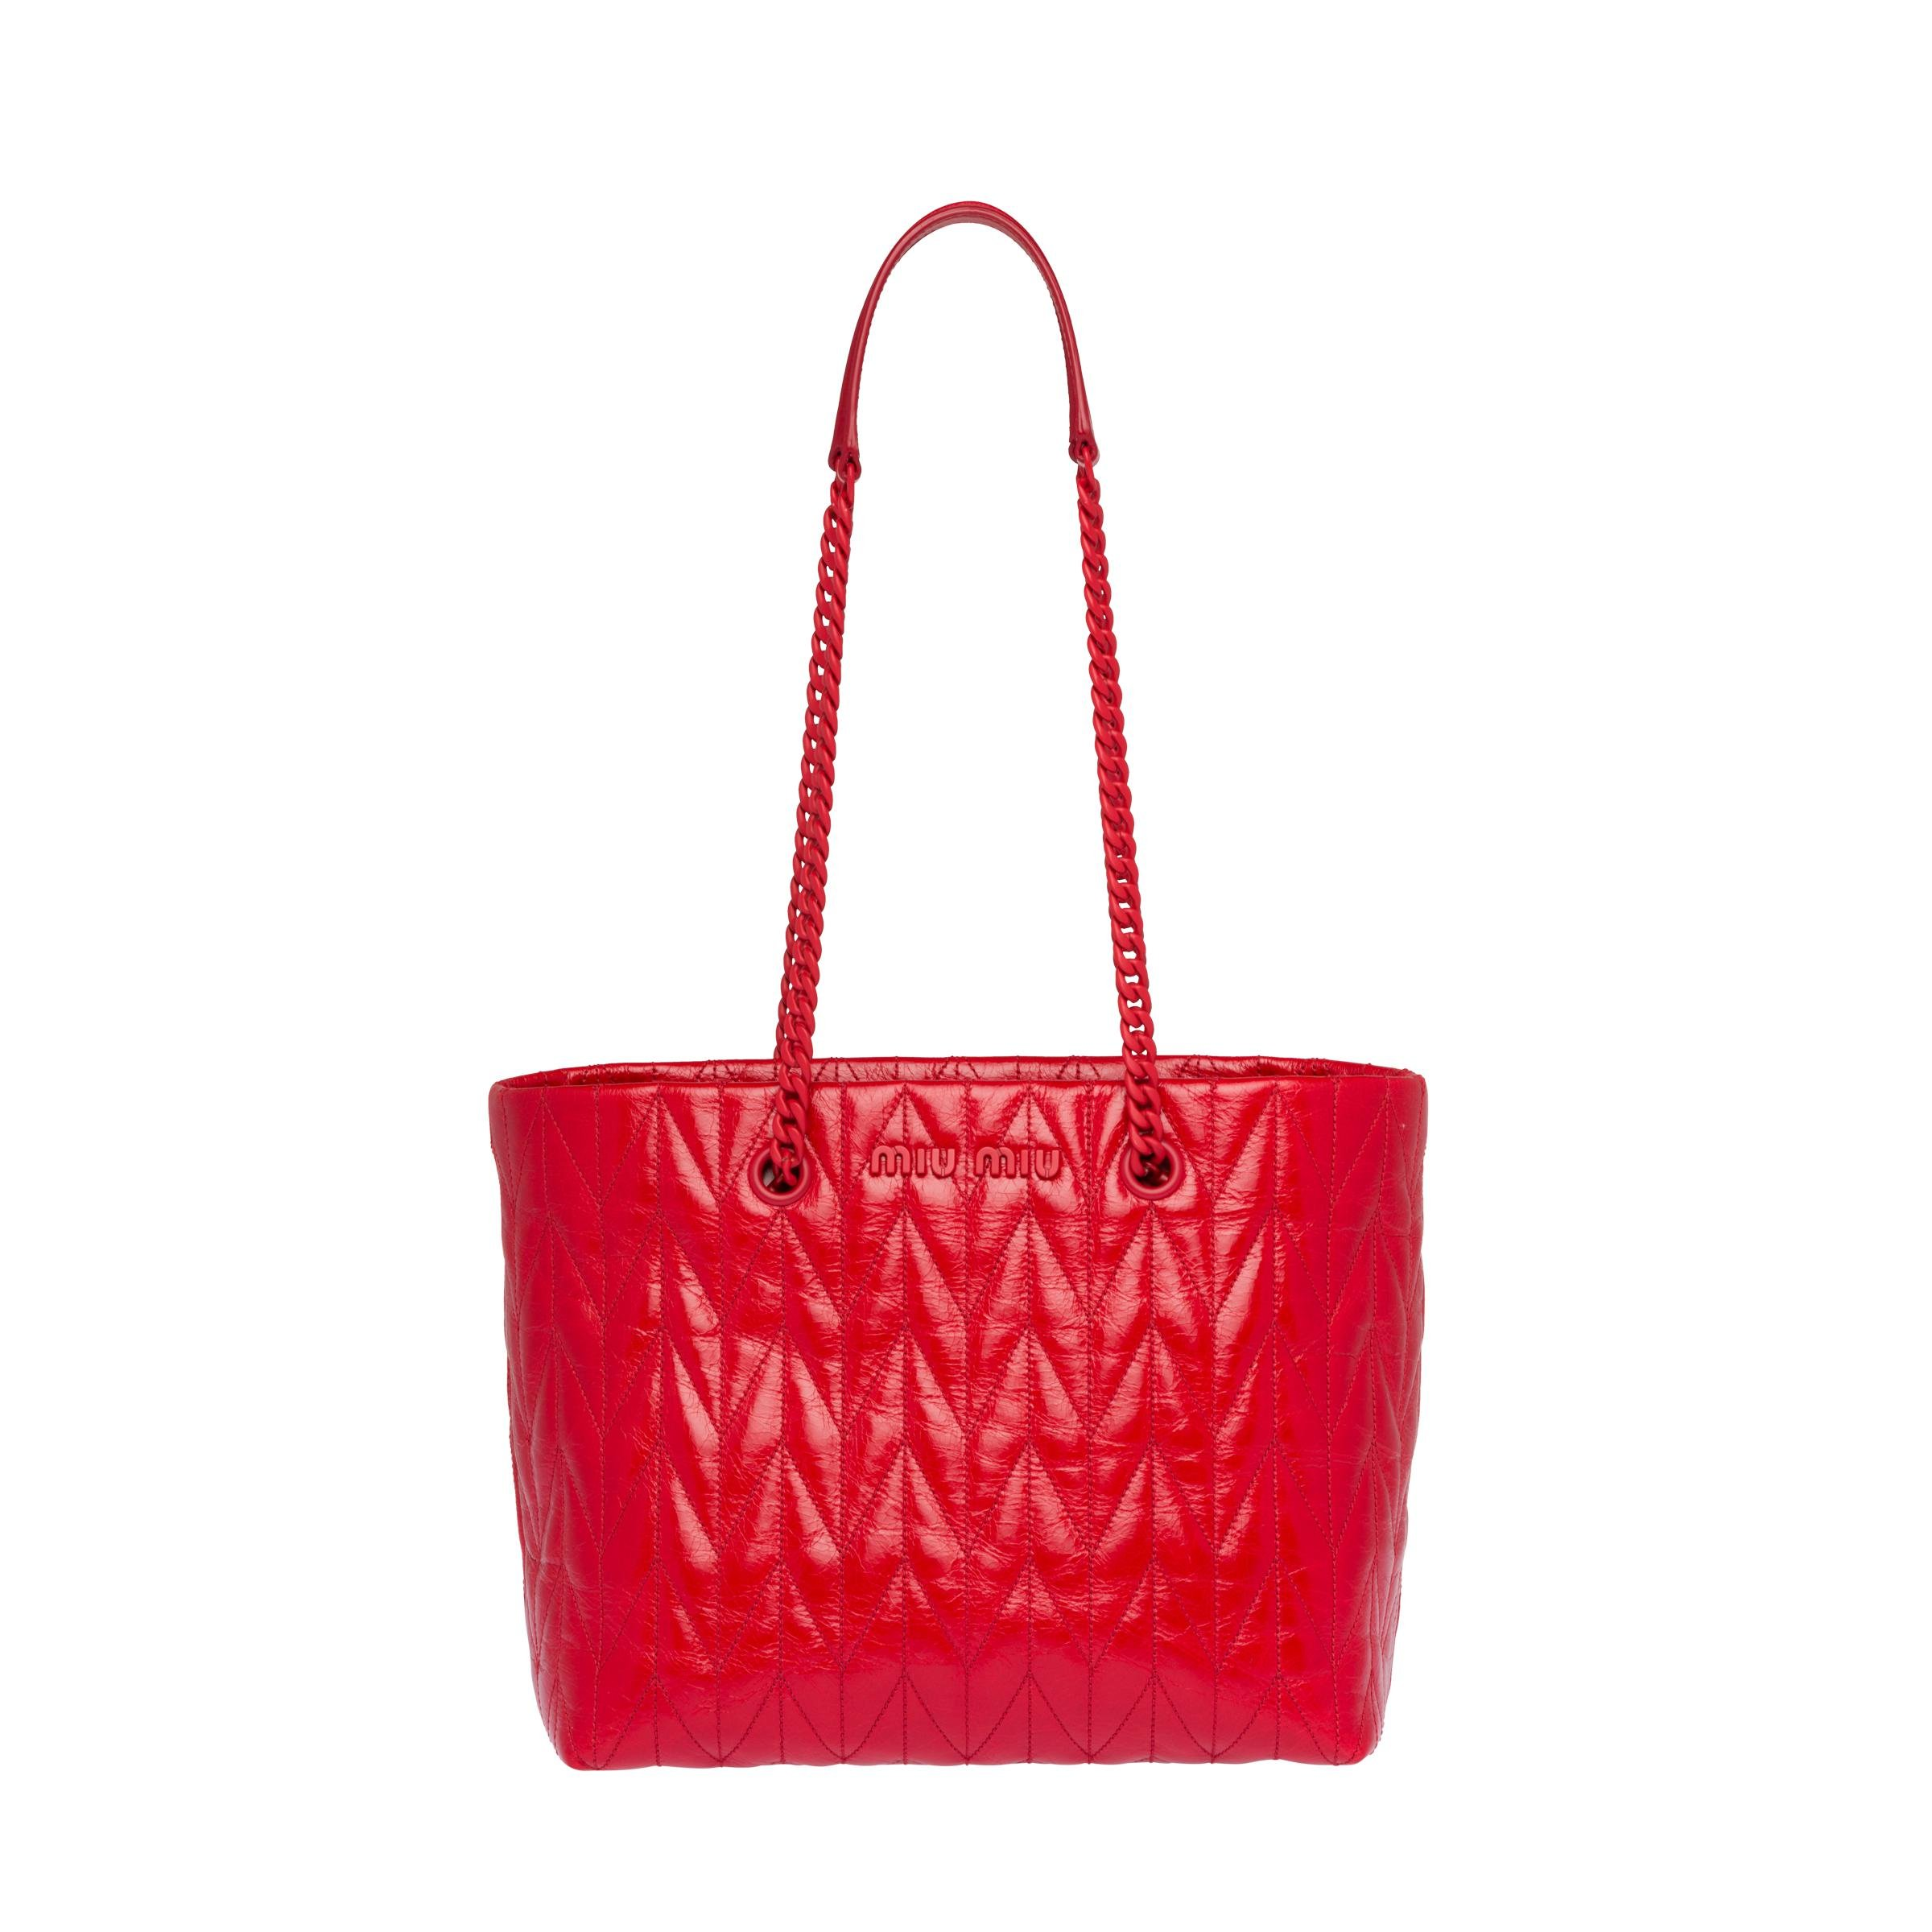 Quilted Shiny Leather Tote Bag Women Red